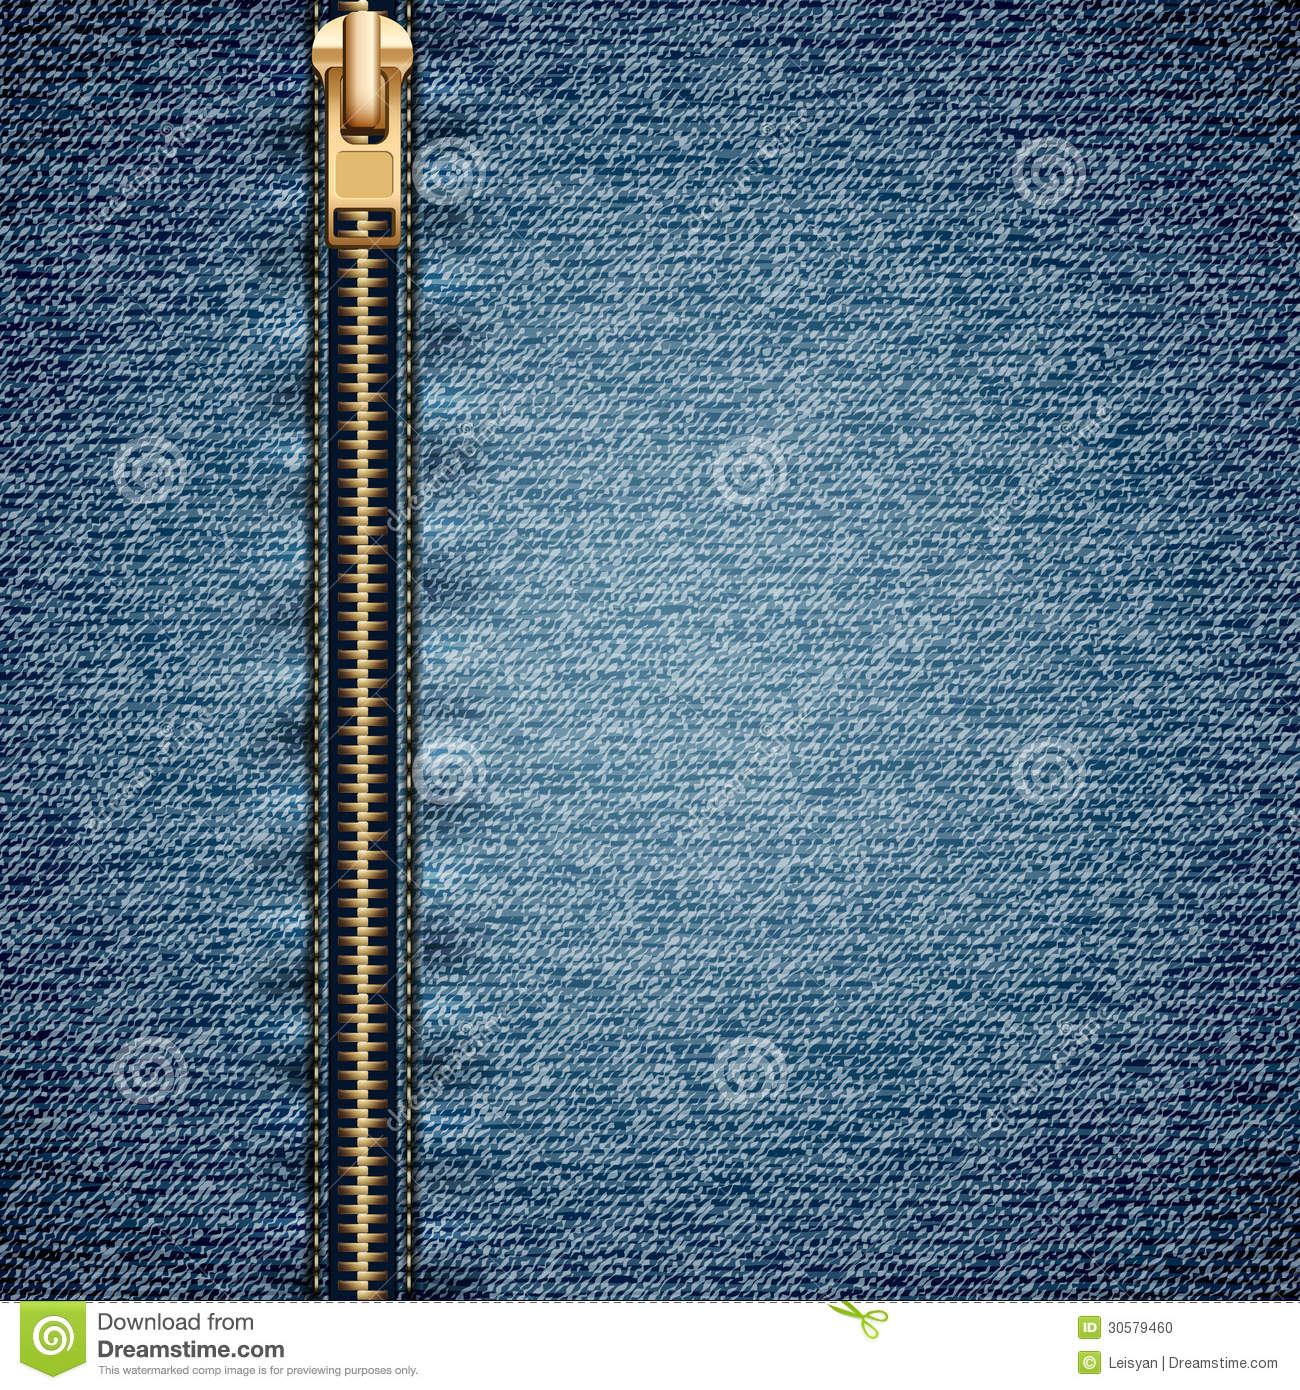 denim with zipper stock illustration  image of abstract